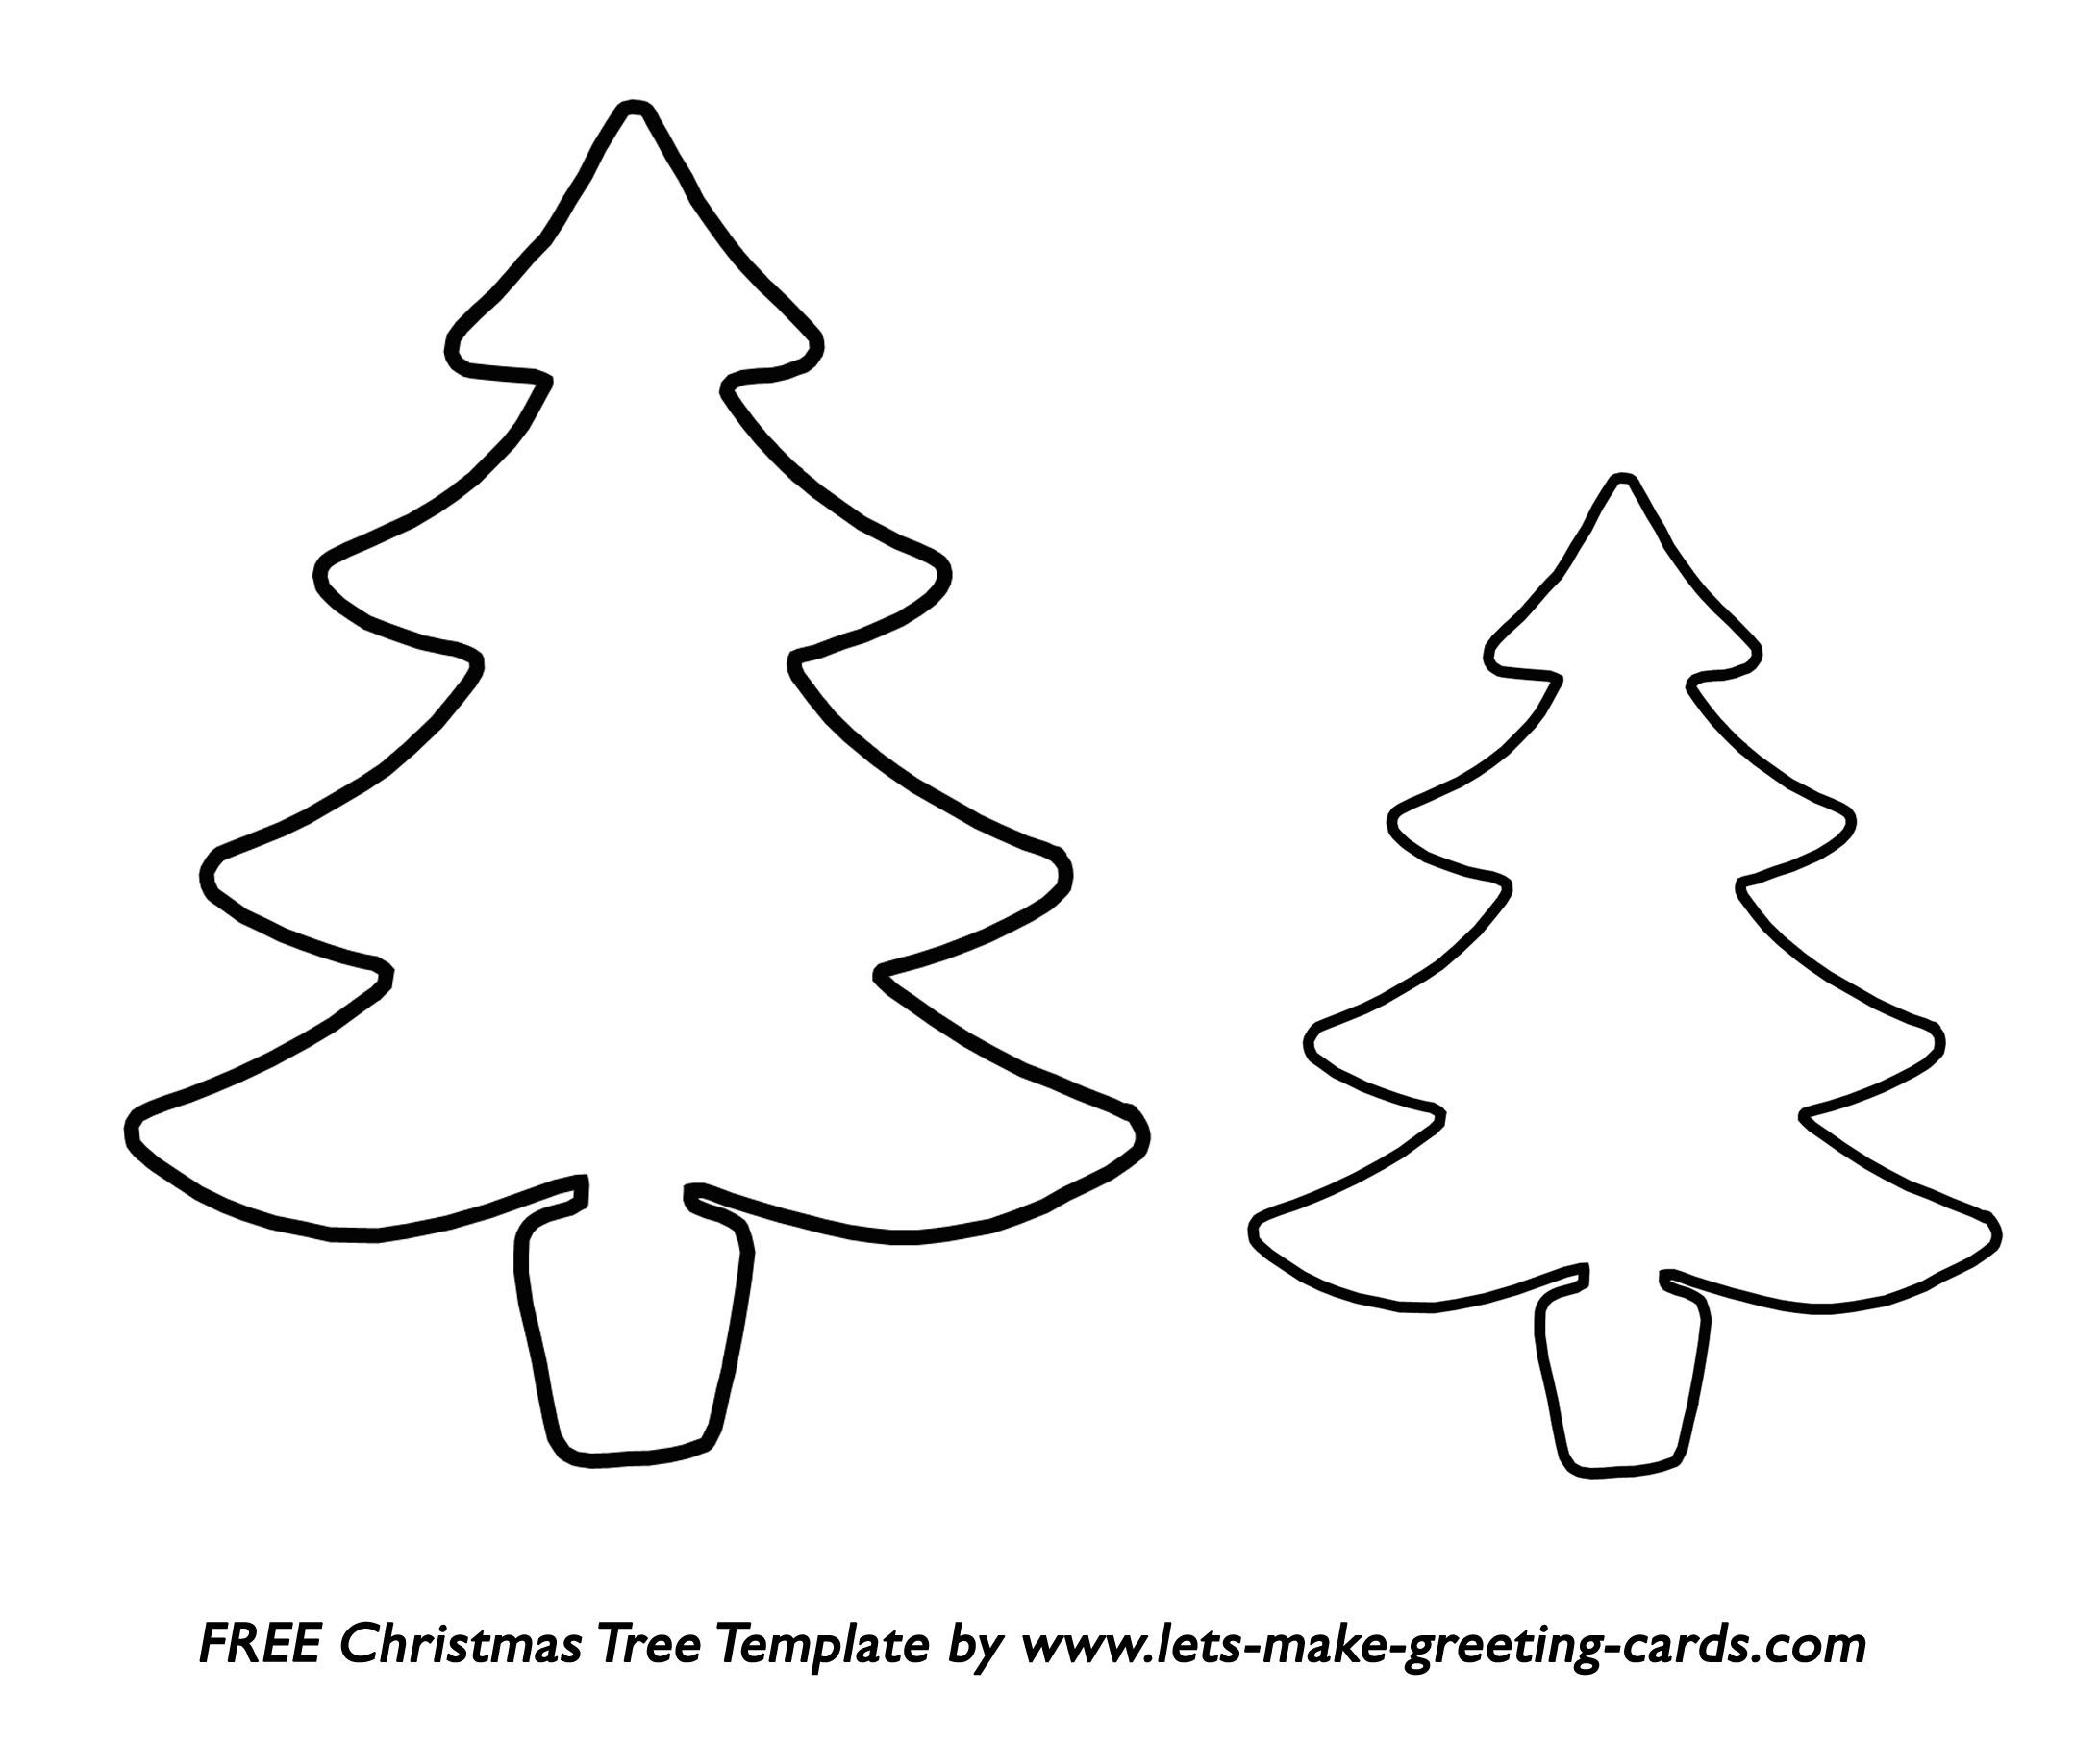 Christmas Tree Templates In All Shapes And Sizes - Free Printable Christmas Ornaments Stencils